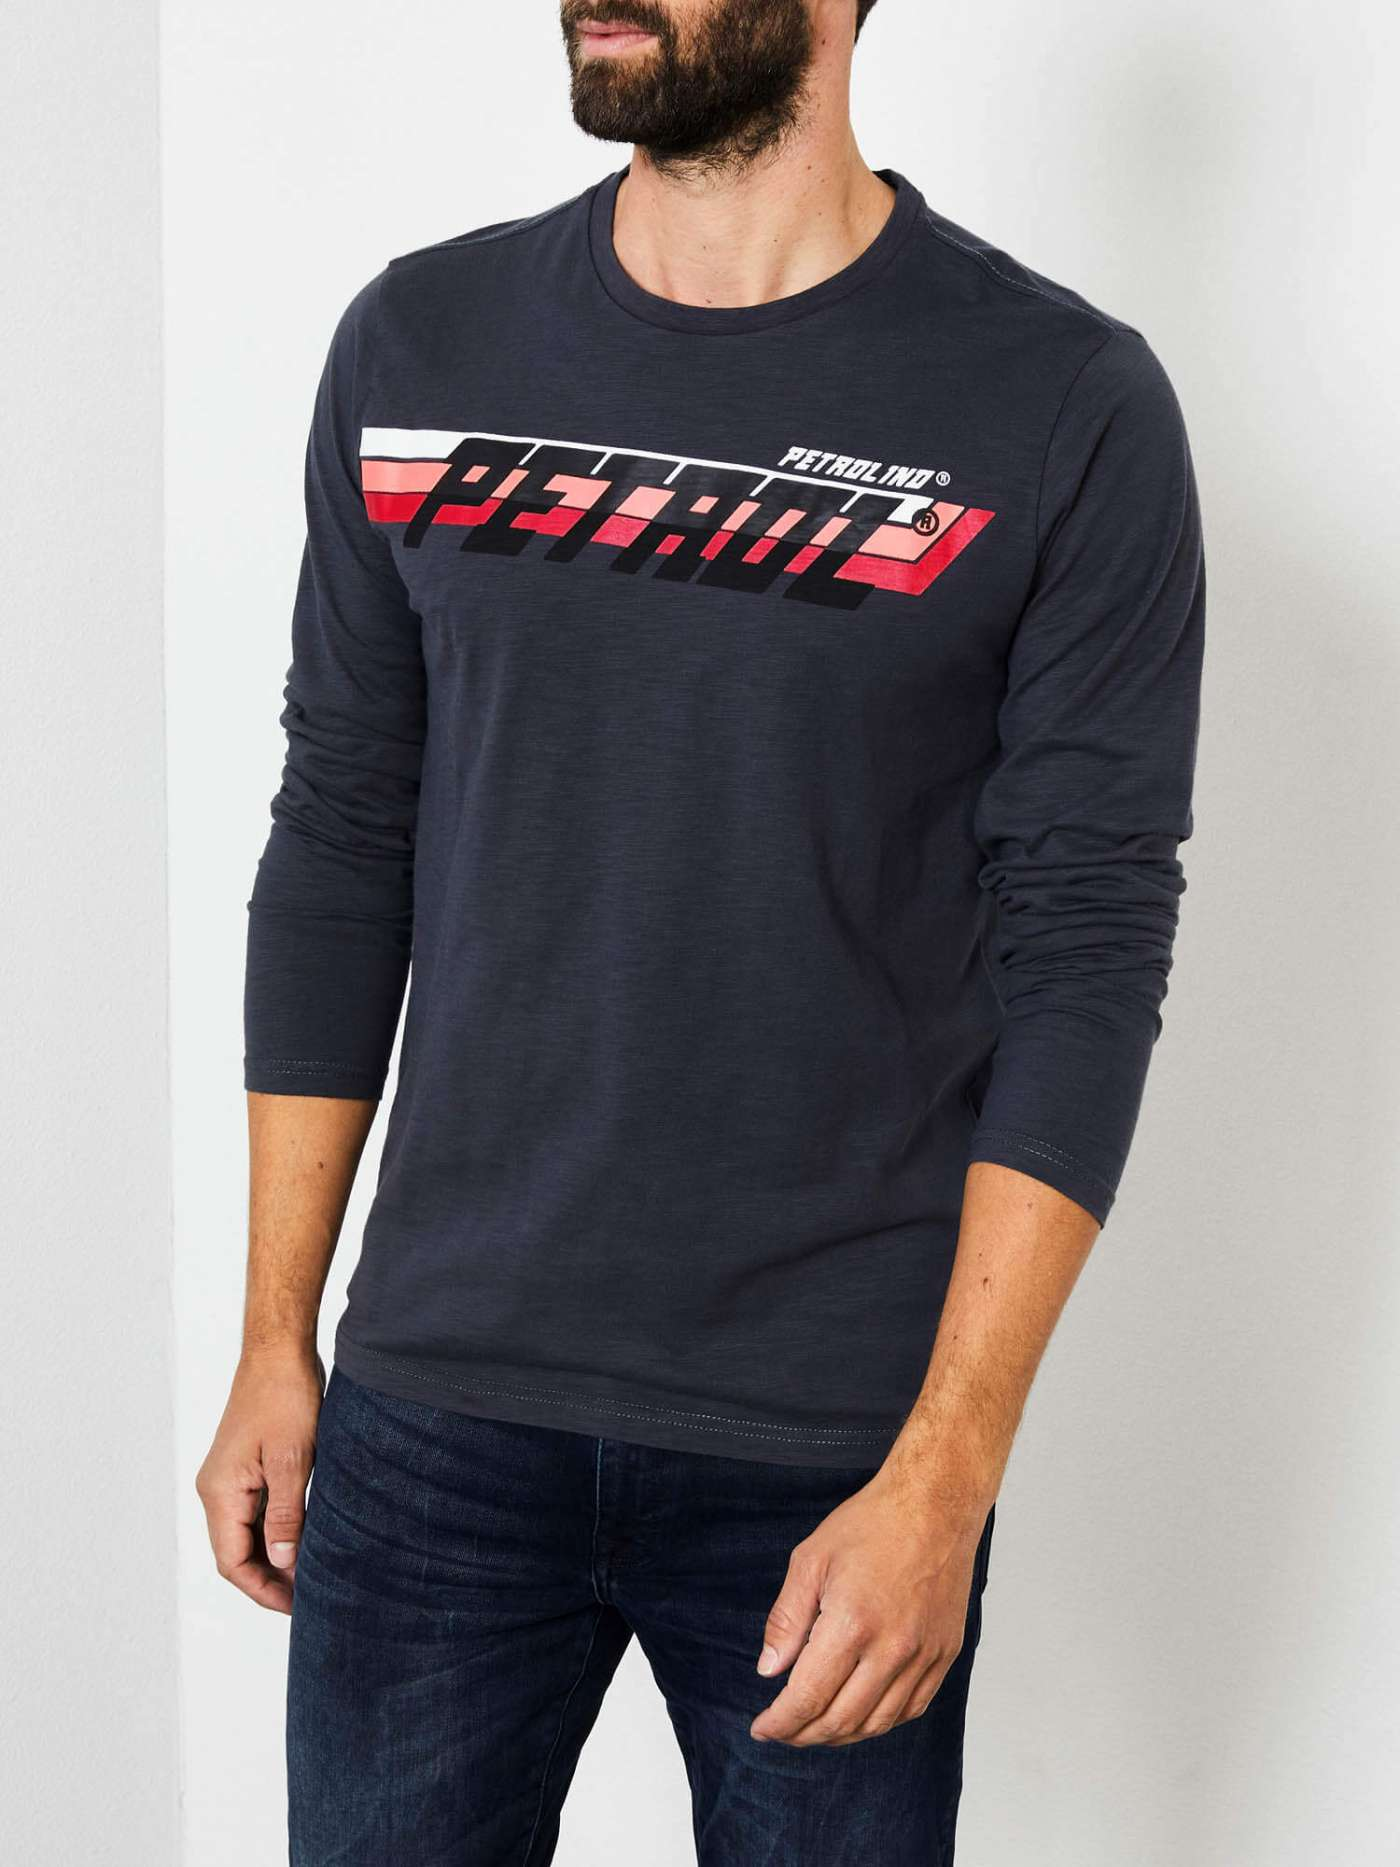 Long-sleeved shirt with racing detail